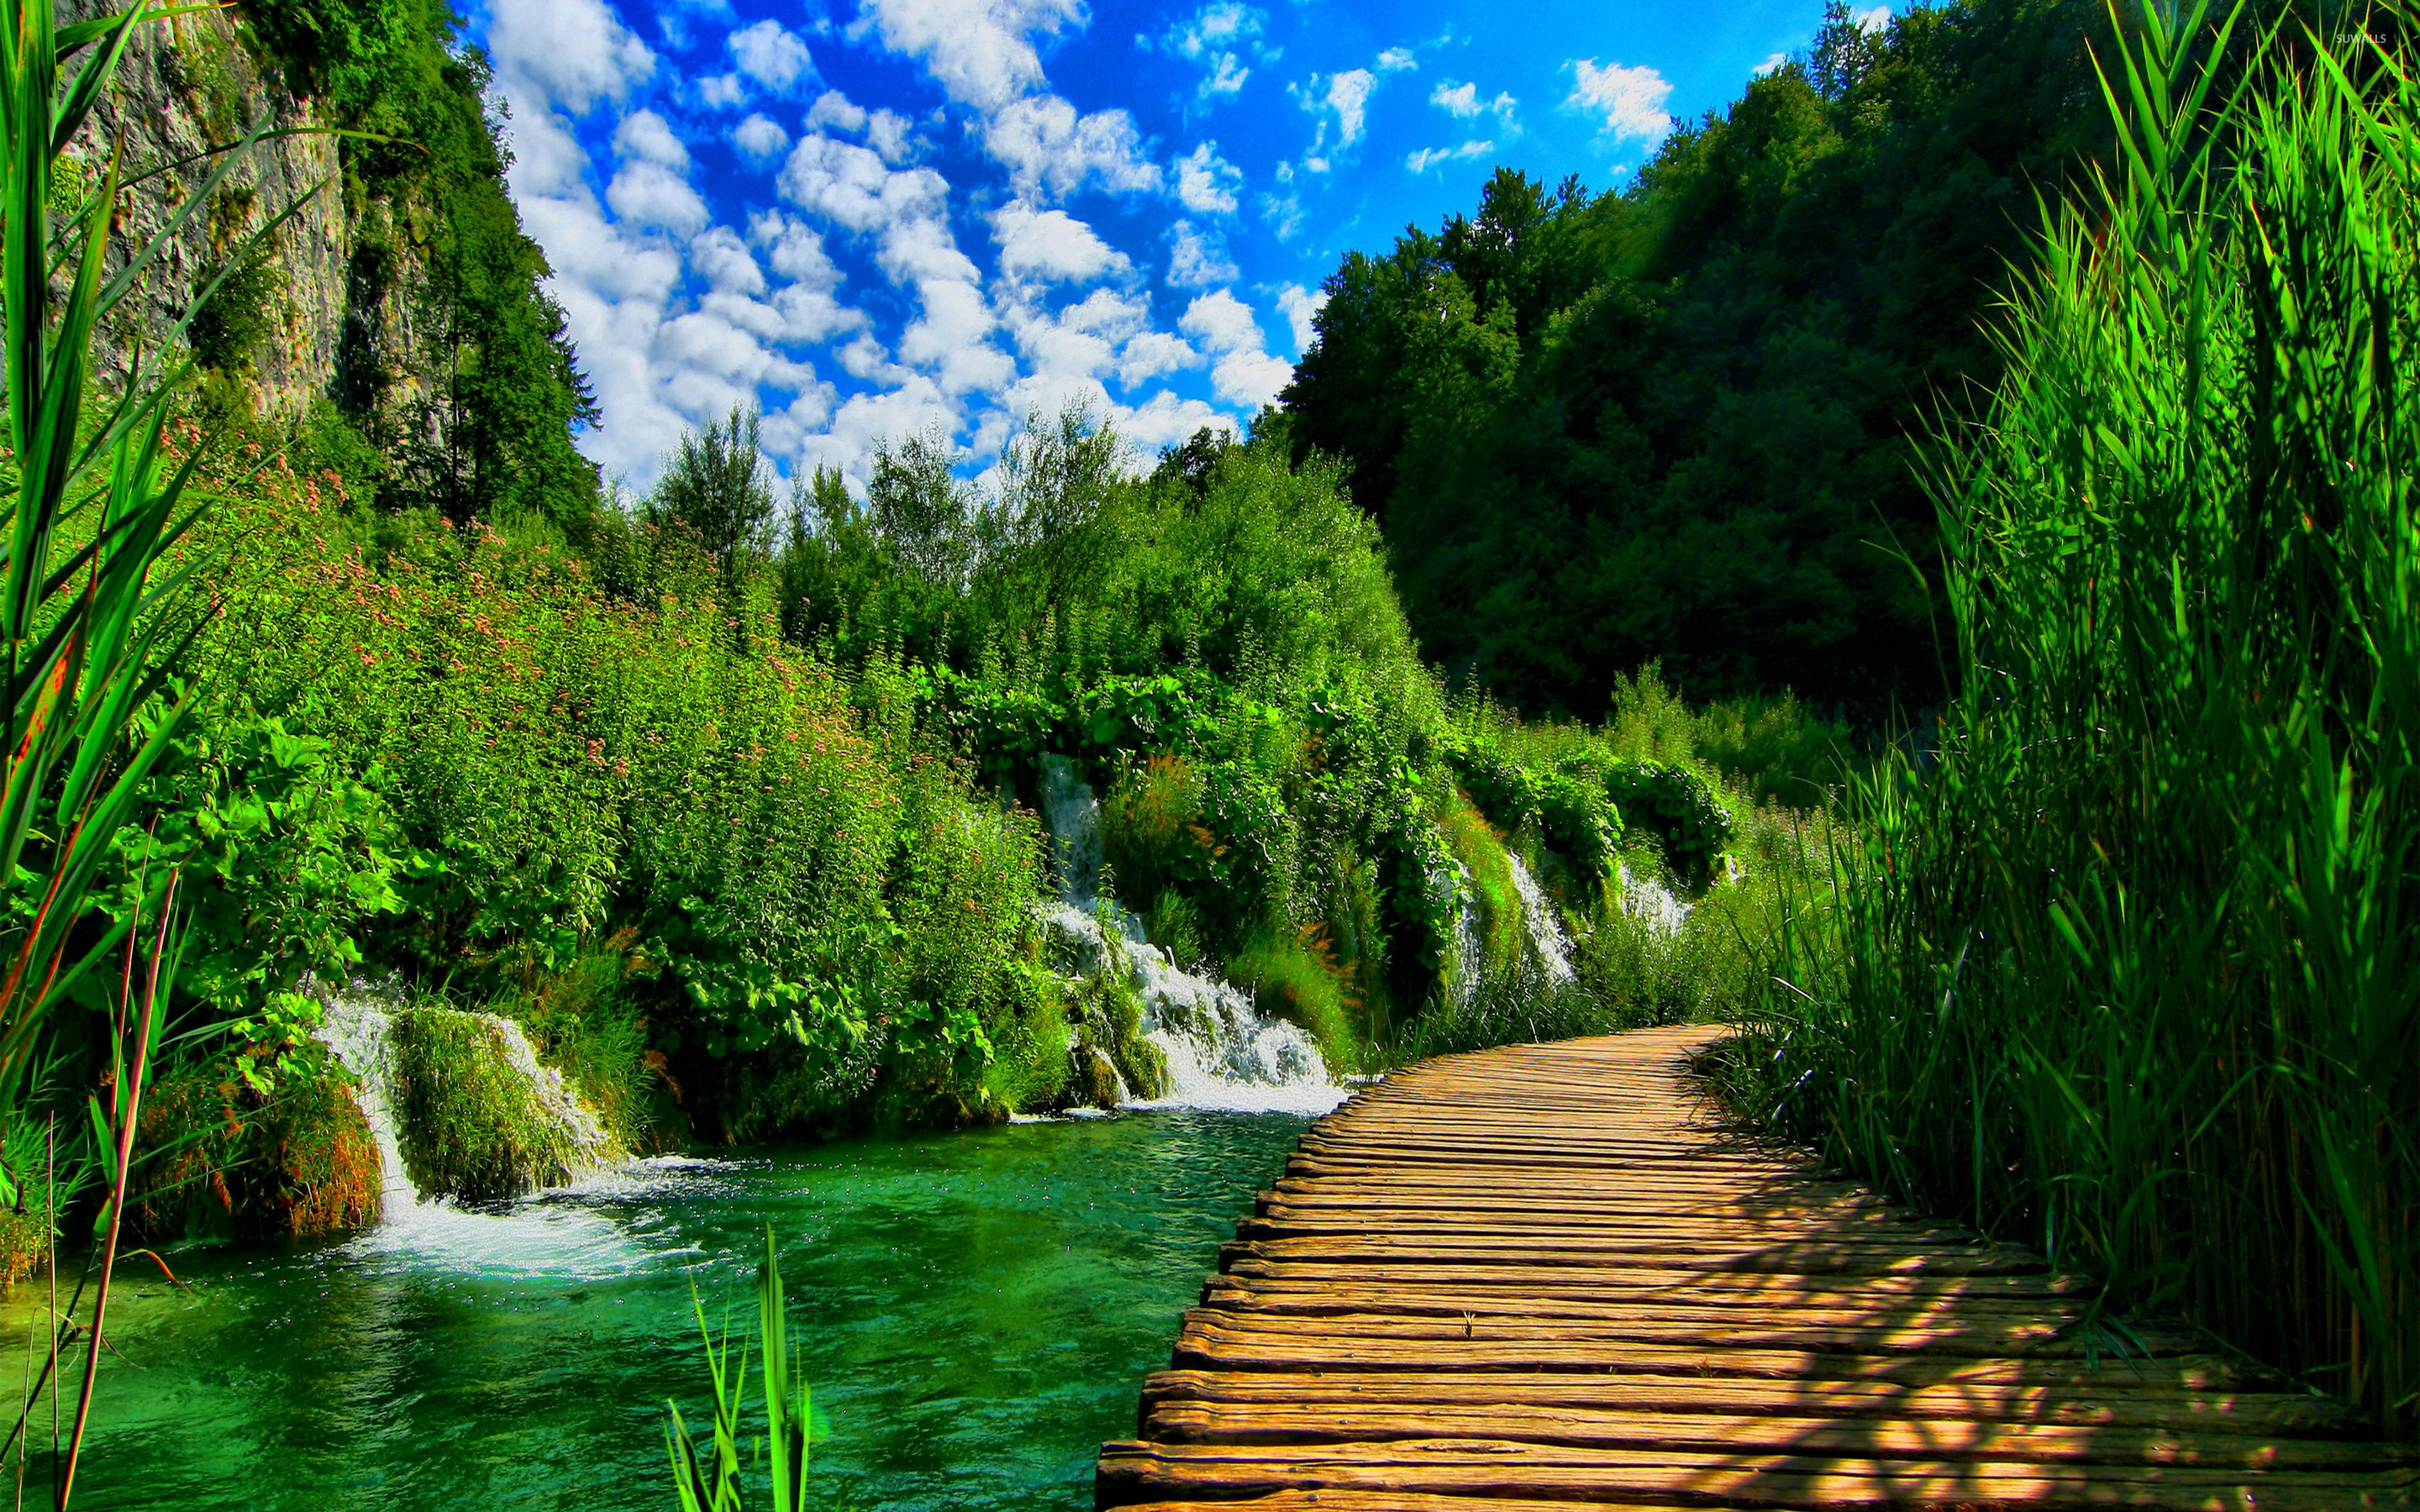 Plitvice Lakes National Park wallpaper   Nature wallpapers   22851 2880x1800